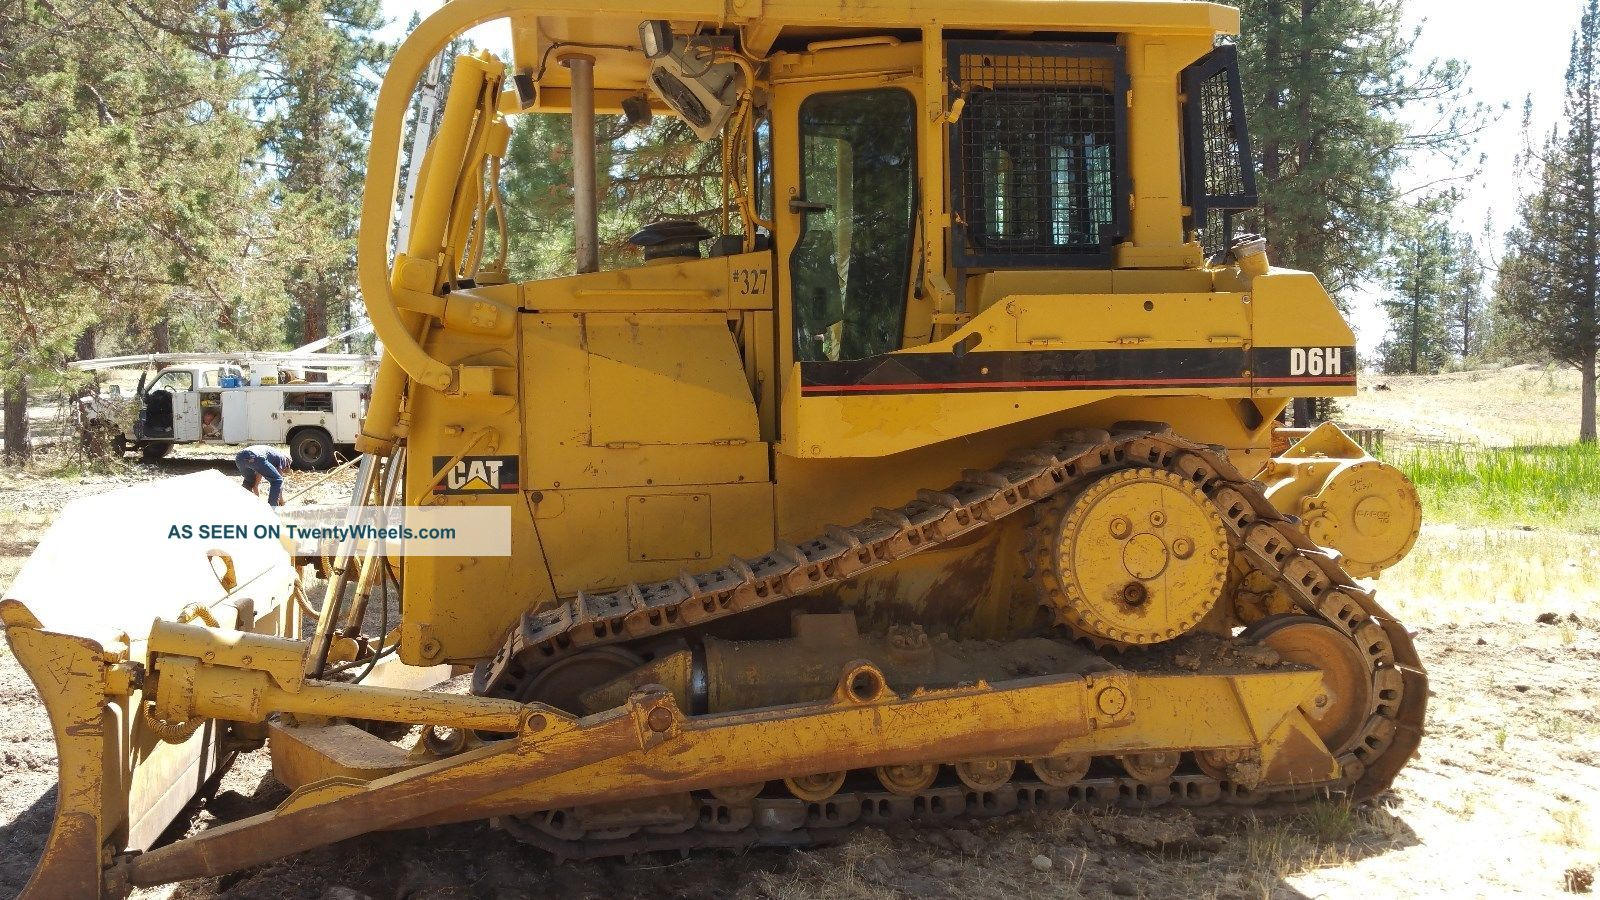 1990 Caterpillar D6h Winch Crawler Dozers & Loaders photo